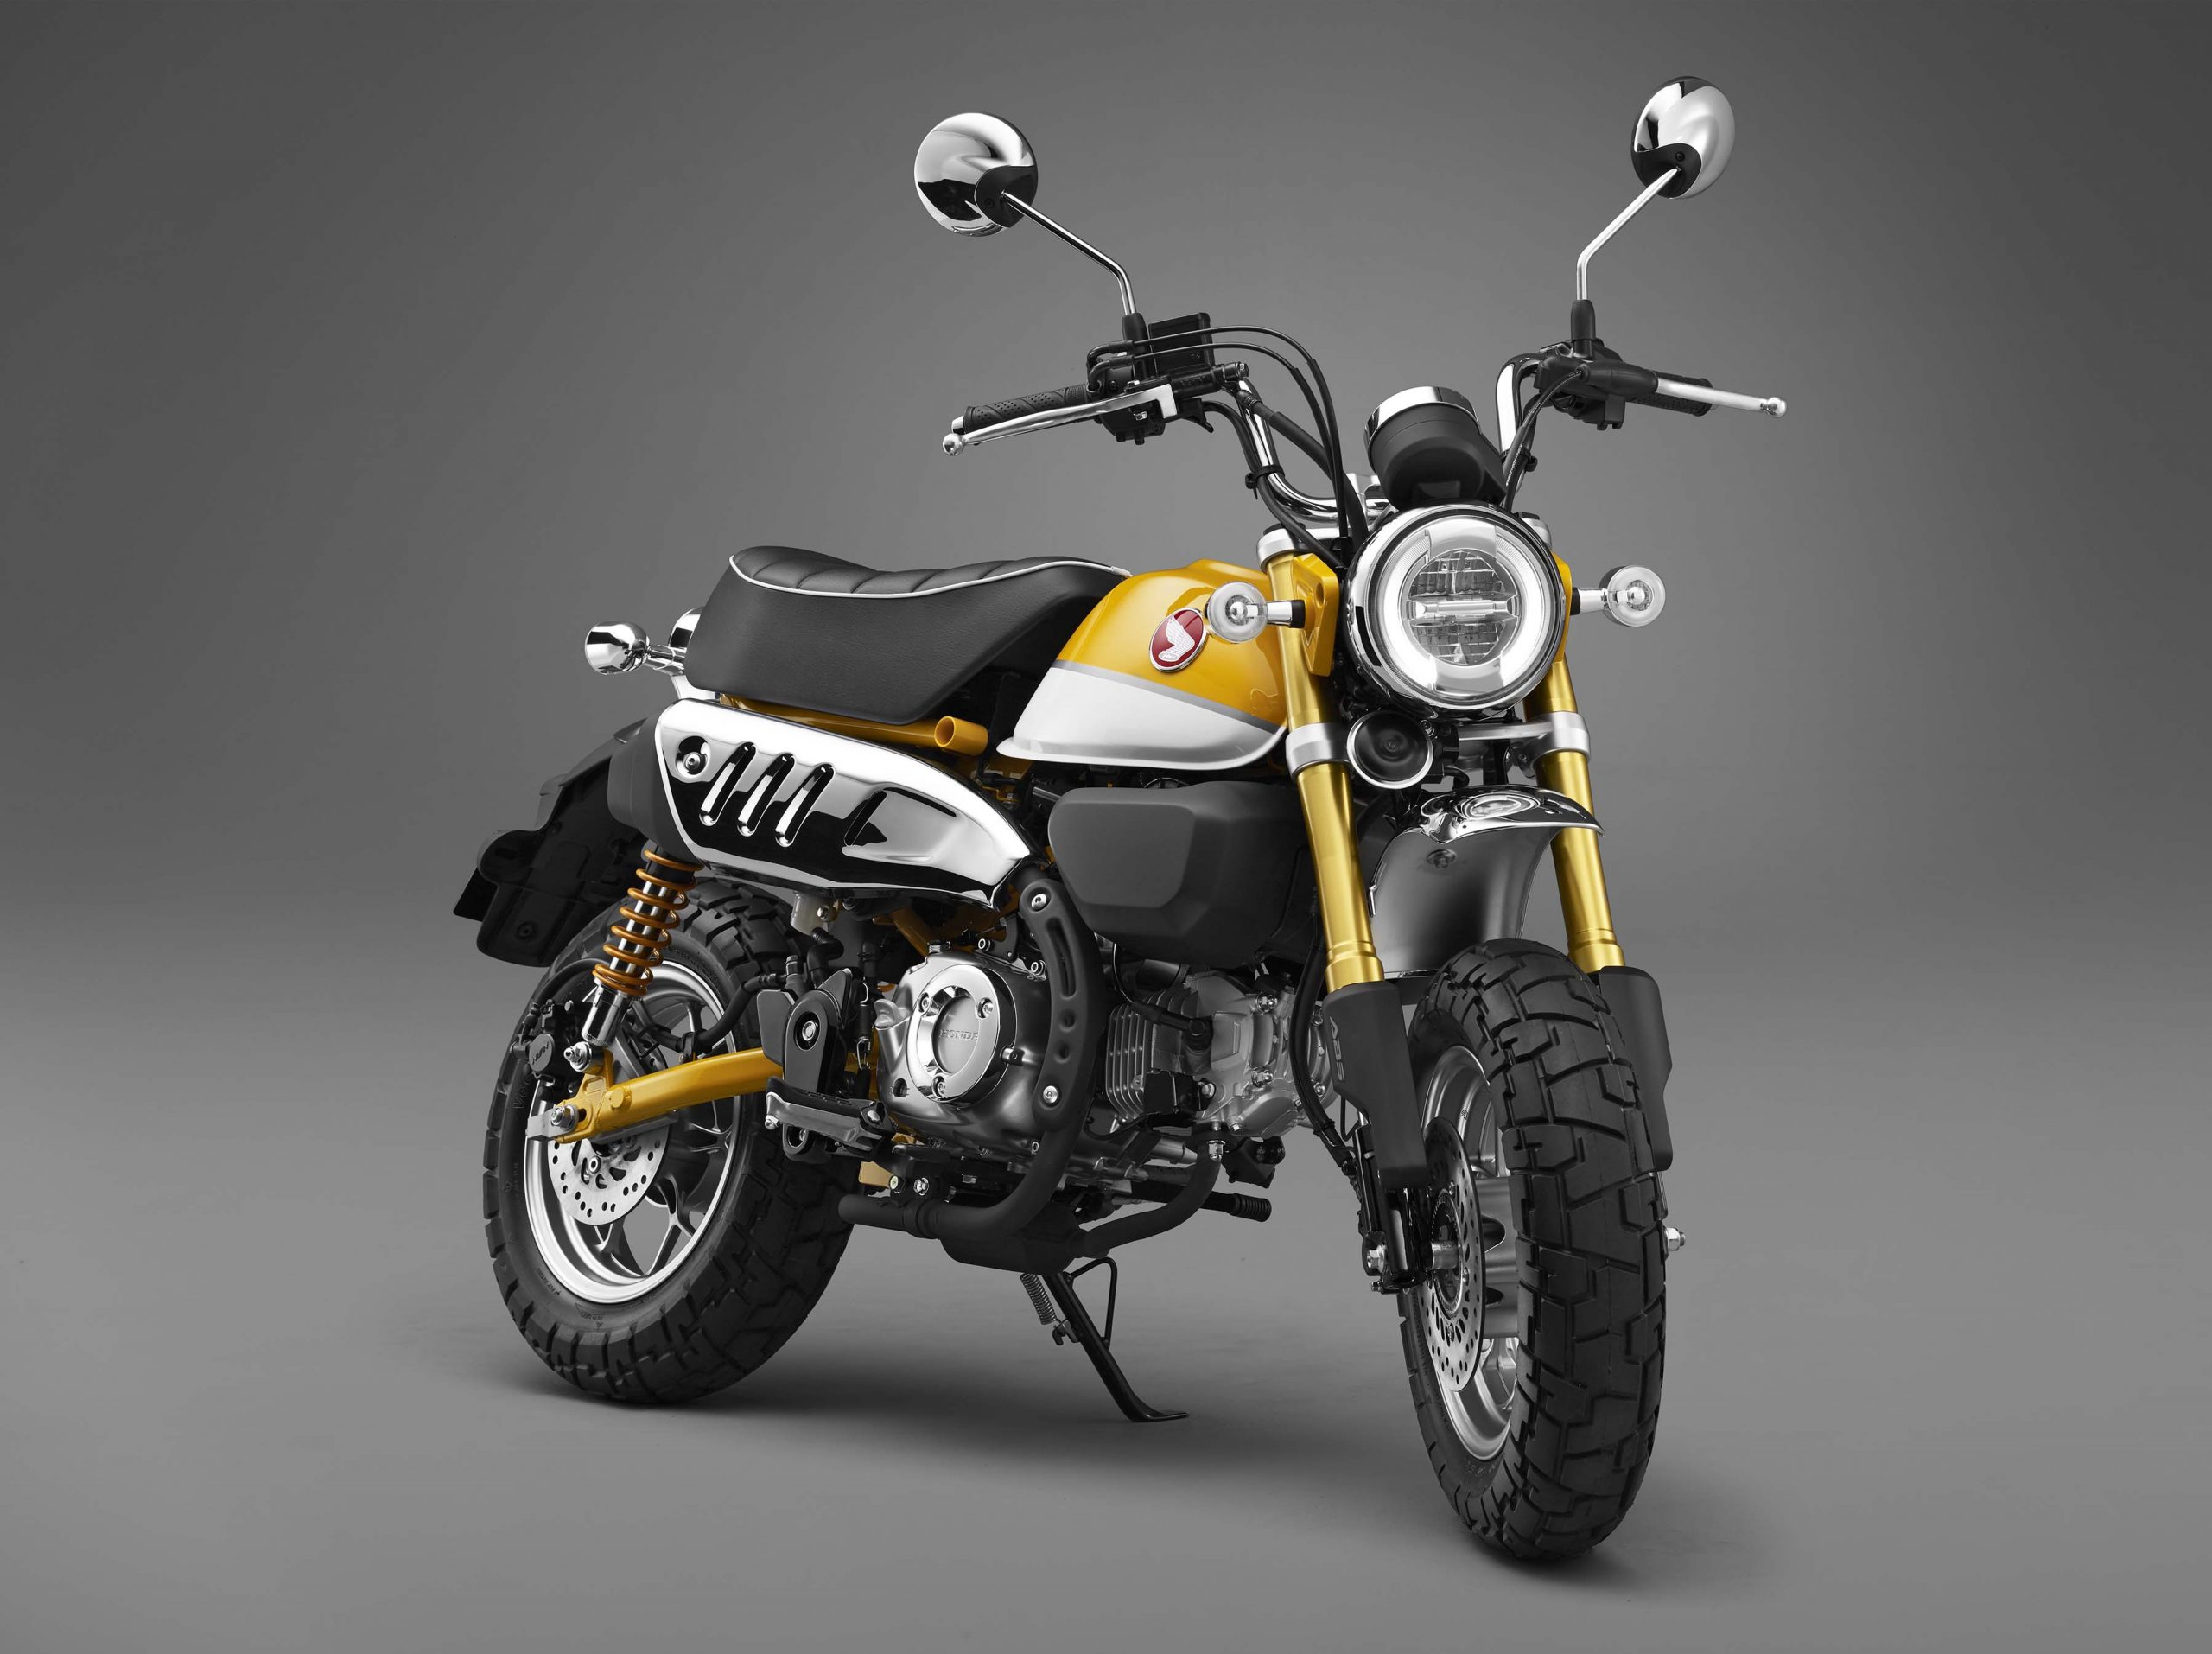 Honda Monkey Motorcycle Pros And Cons